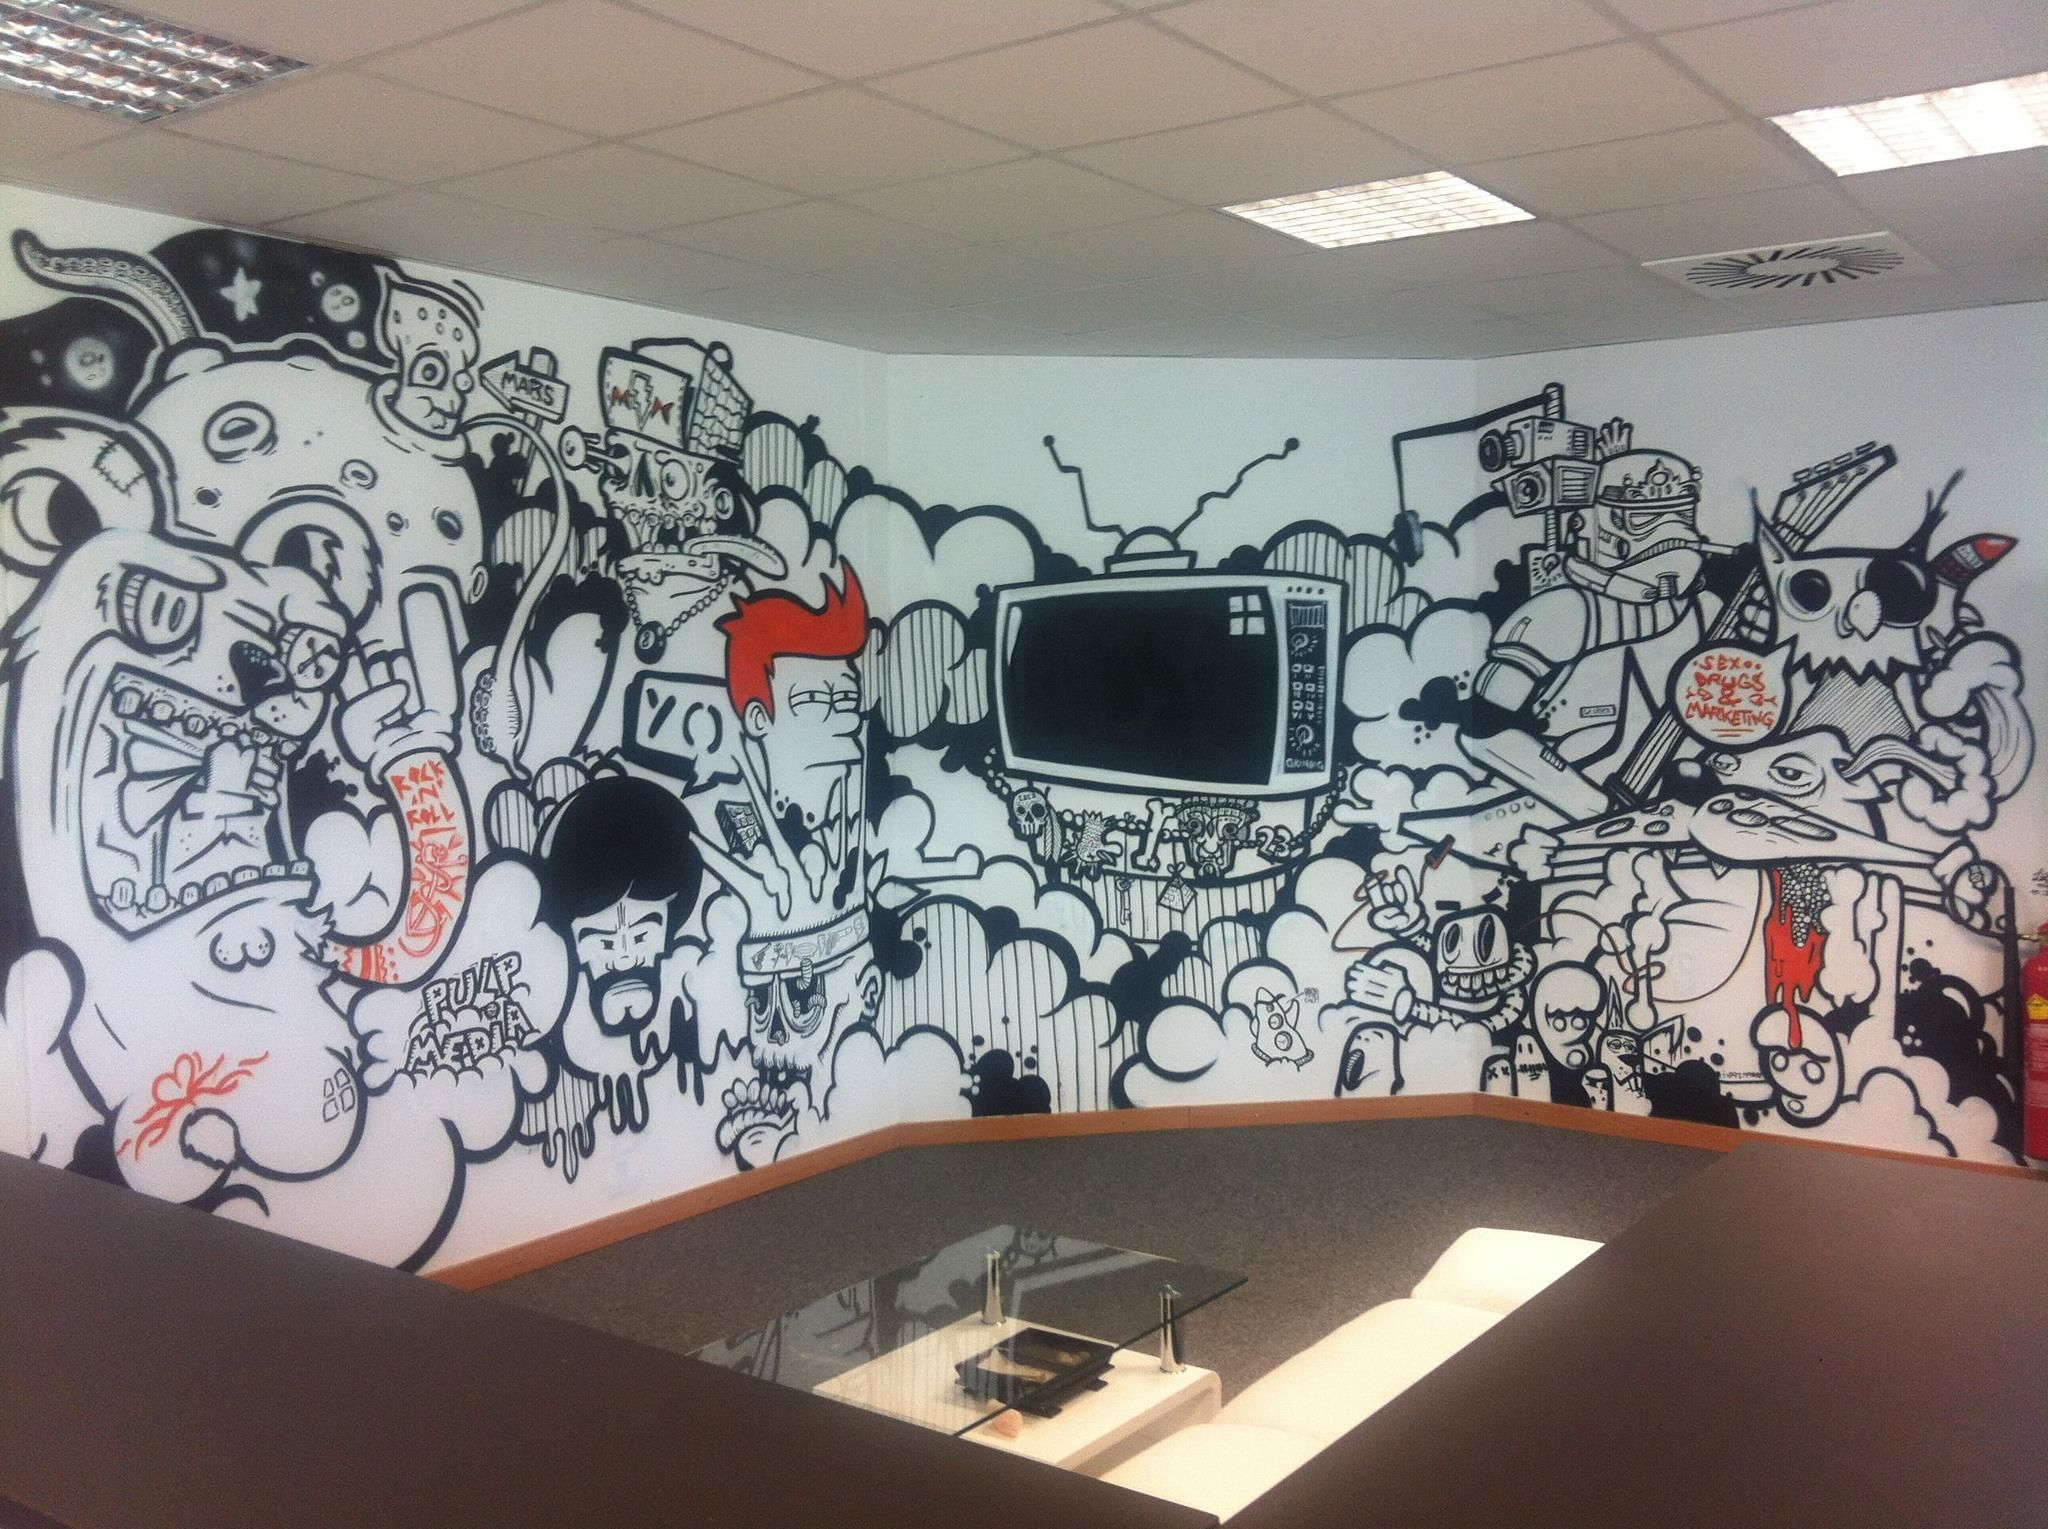 Room wall graffiti - Office Graffiti Wall Office Graffiti Wall Bedroom And Living Room Image Collections